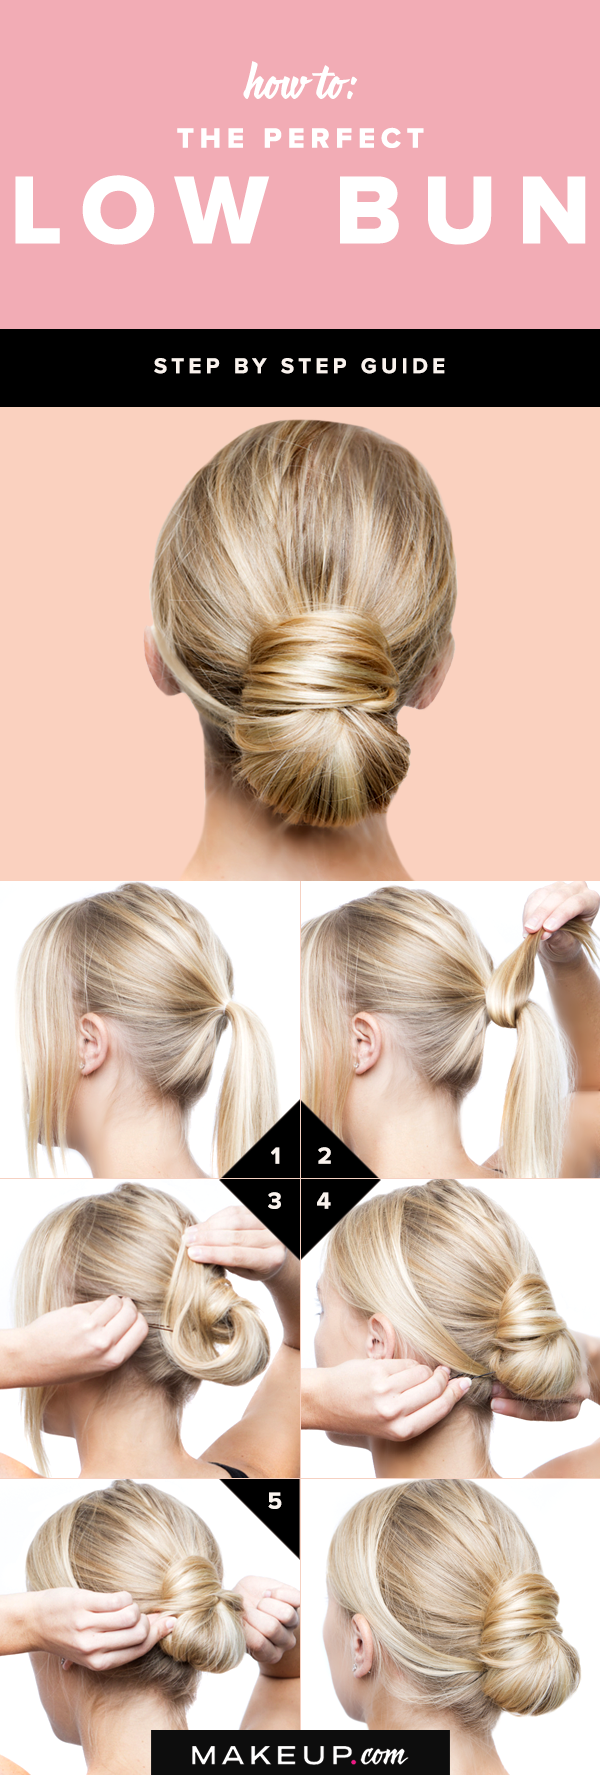 How To Get The Perfect Low Bun In 4 Easy Steps Makeup Com By L Oreal Hair Bun Tutorial Medium Hair Styles Medium Length Hair Styles